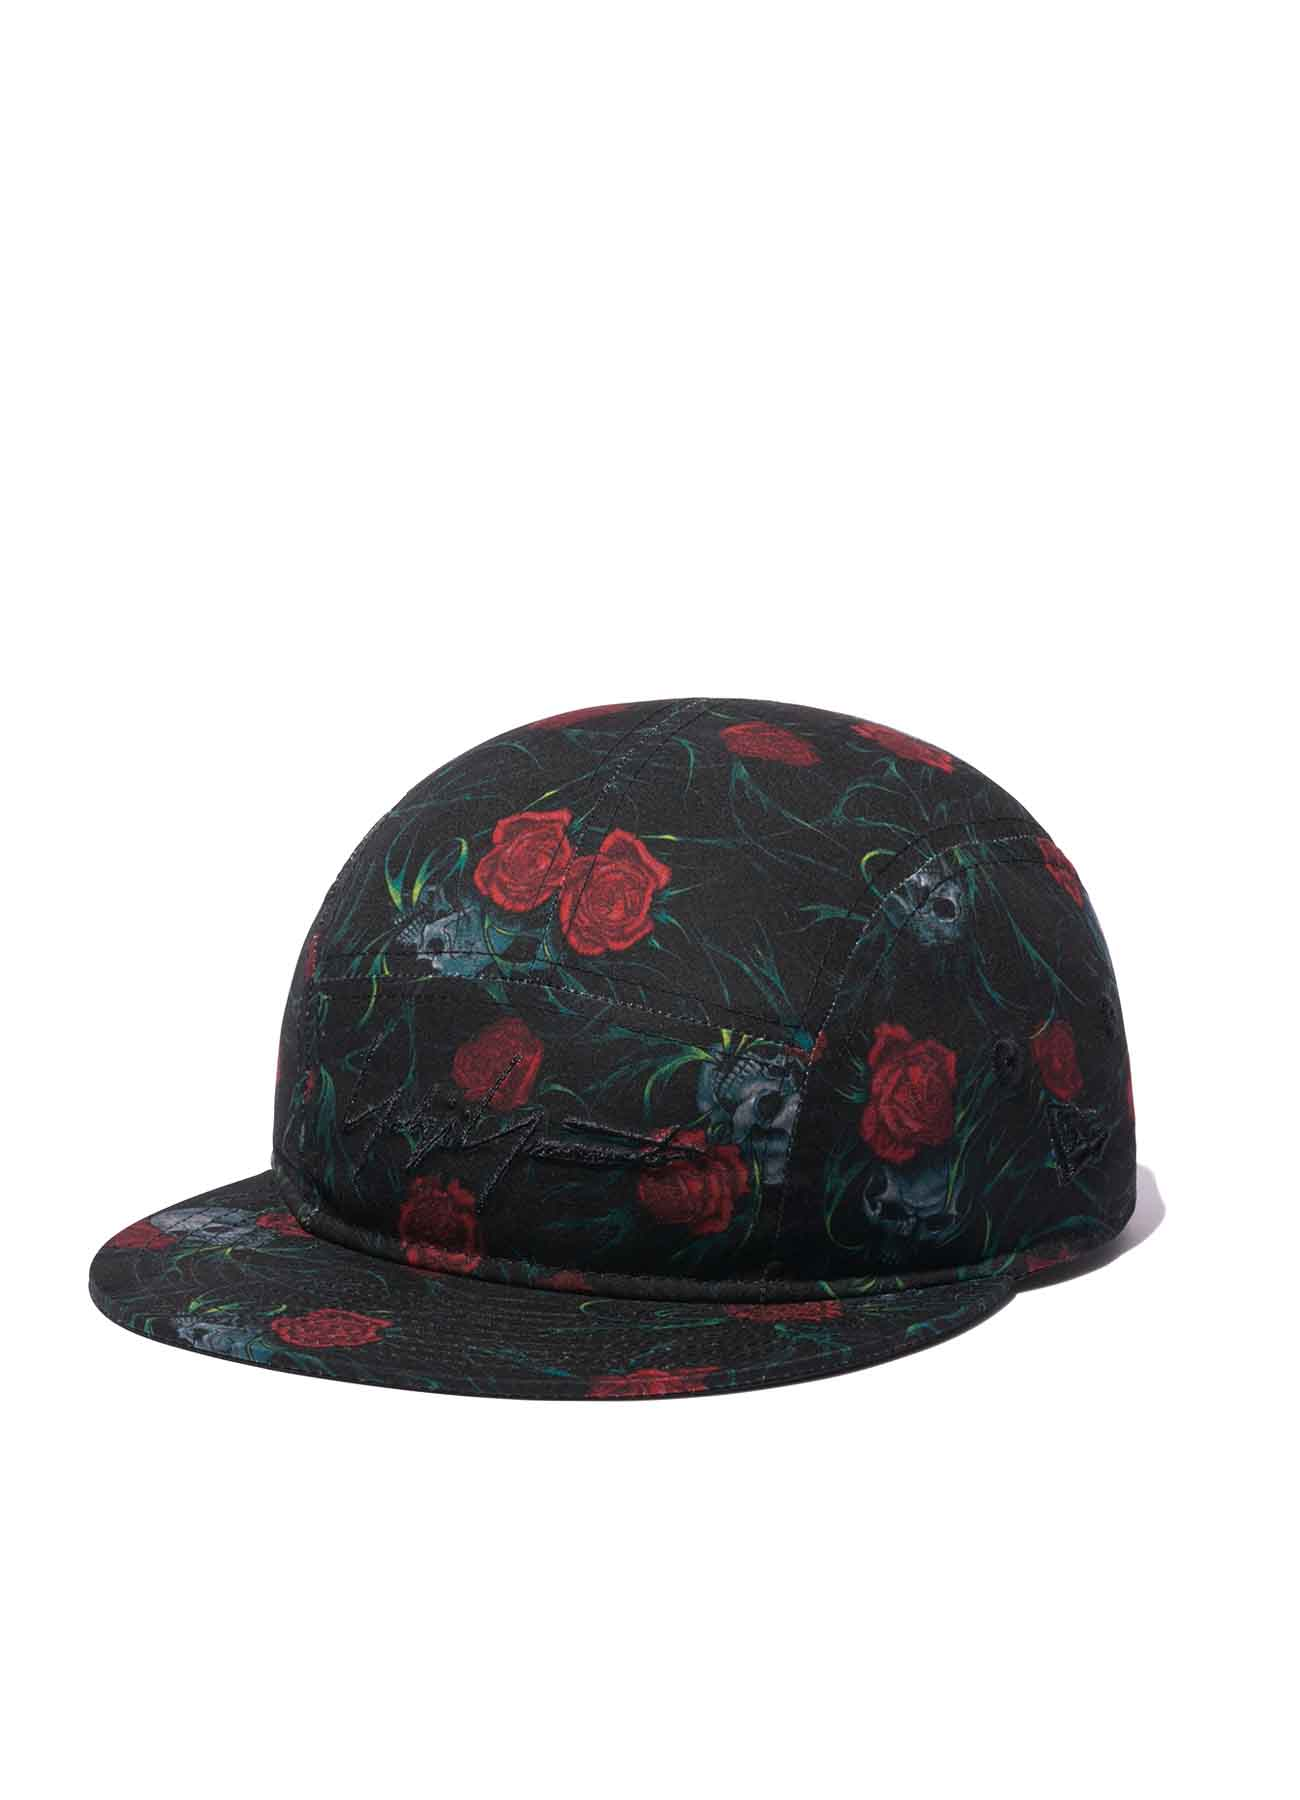 Yohji Yamamoto × New Era POLYESTER TRANSCRIPTION PRINT SKULL ROSE JET CAP BLACK RED